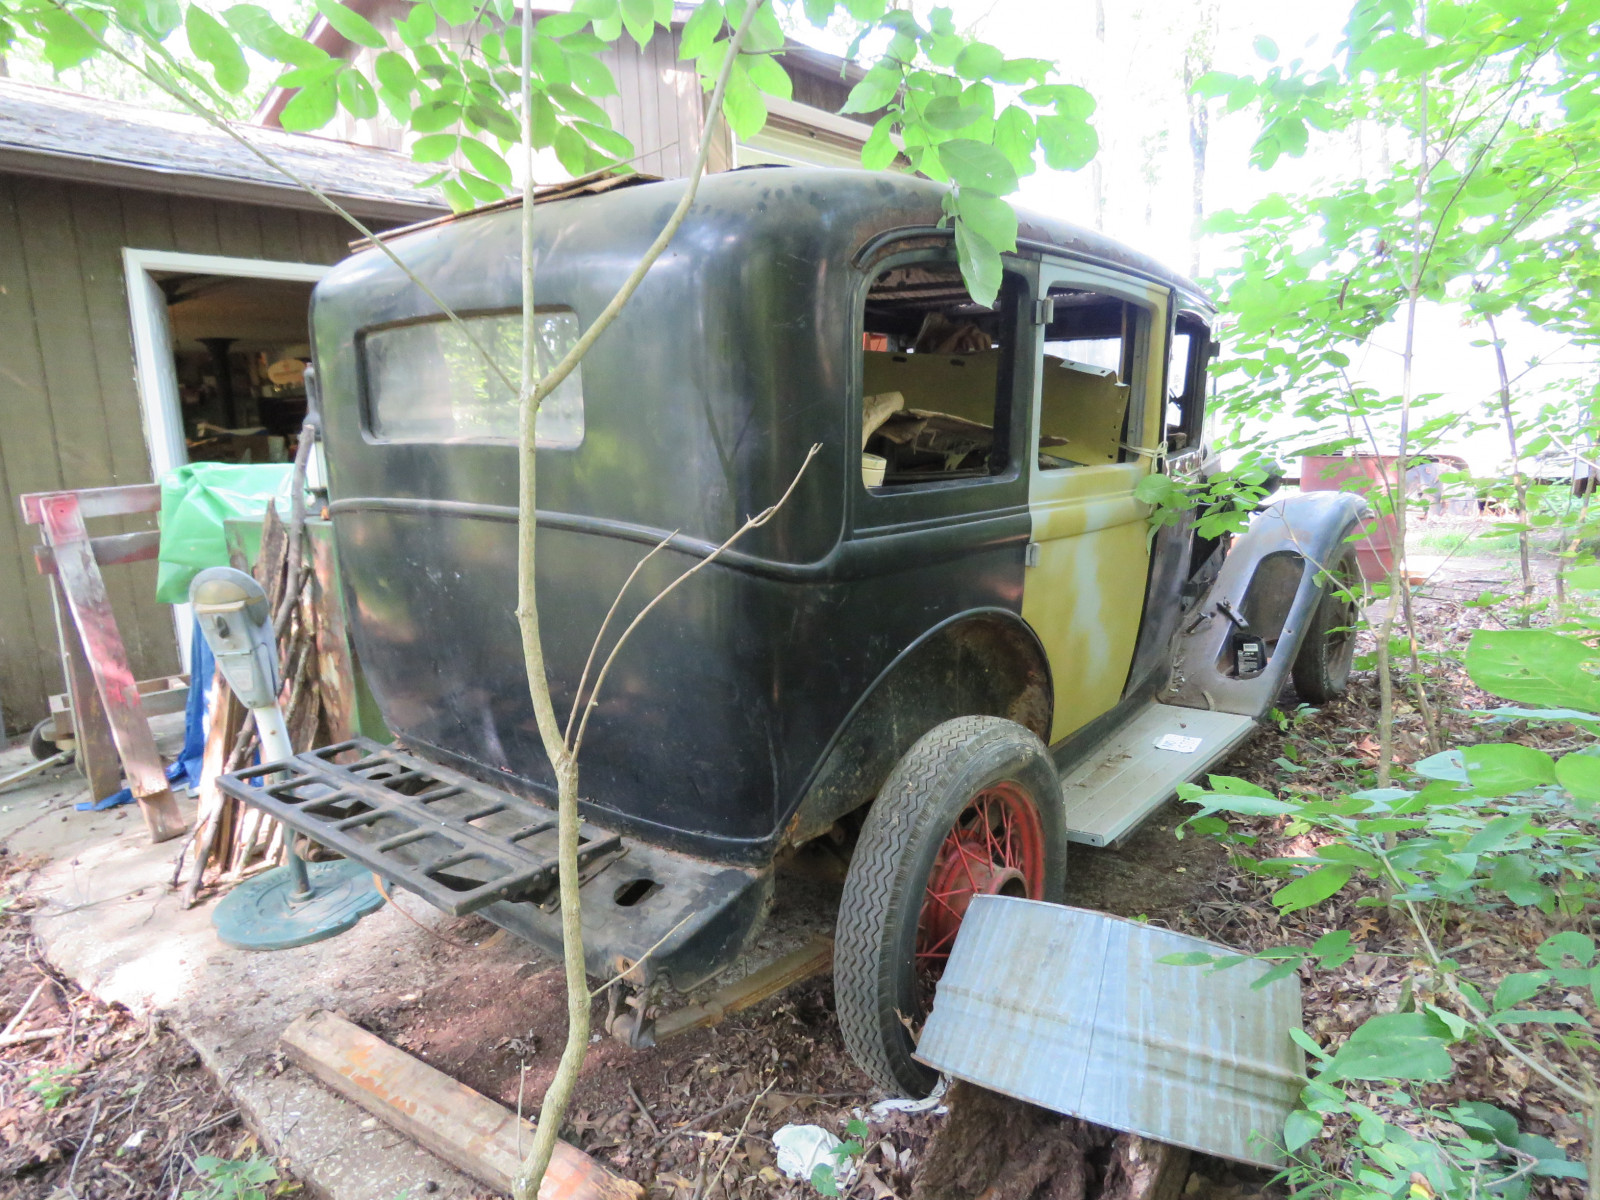 1931 Chrysler CM6 4dr Sedan Project - Image 7